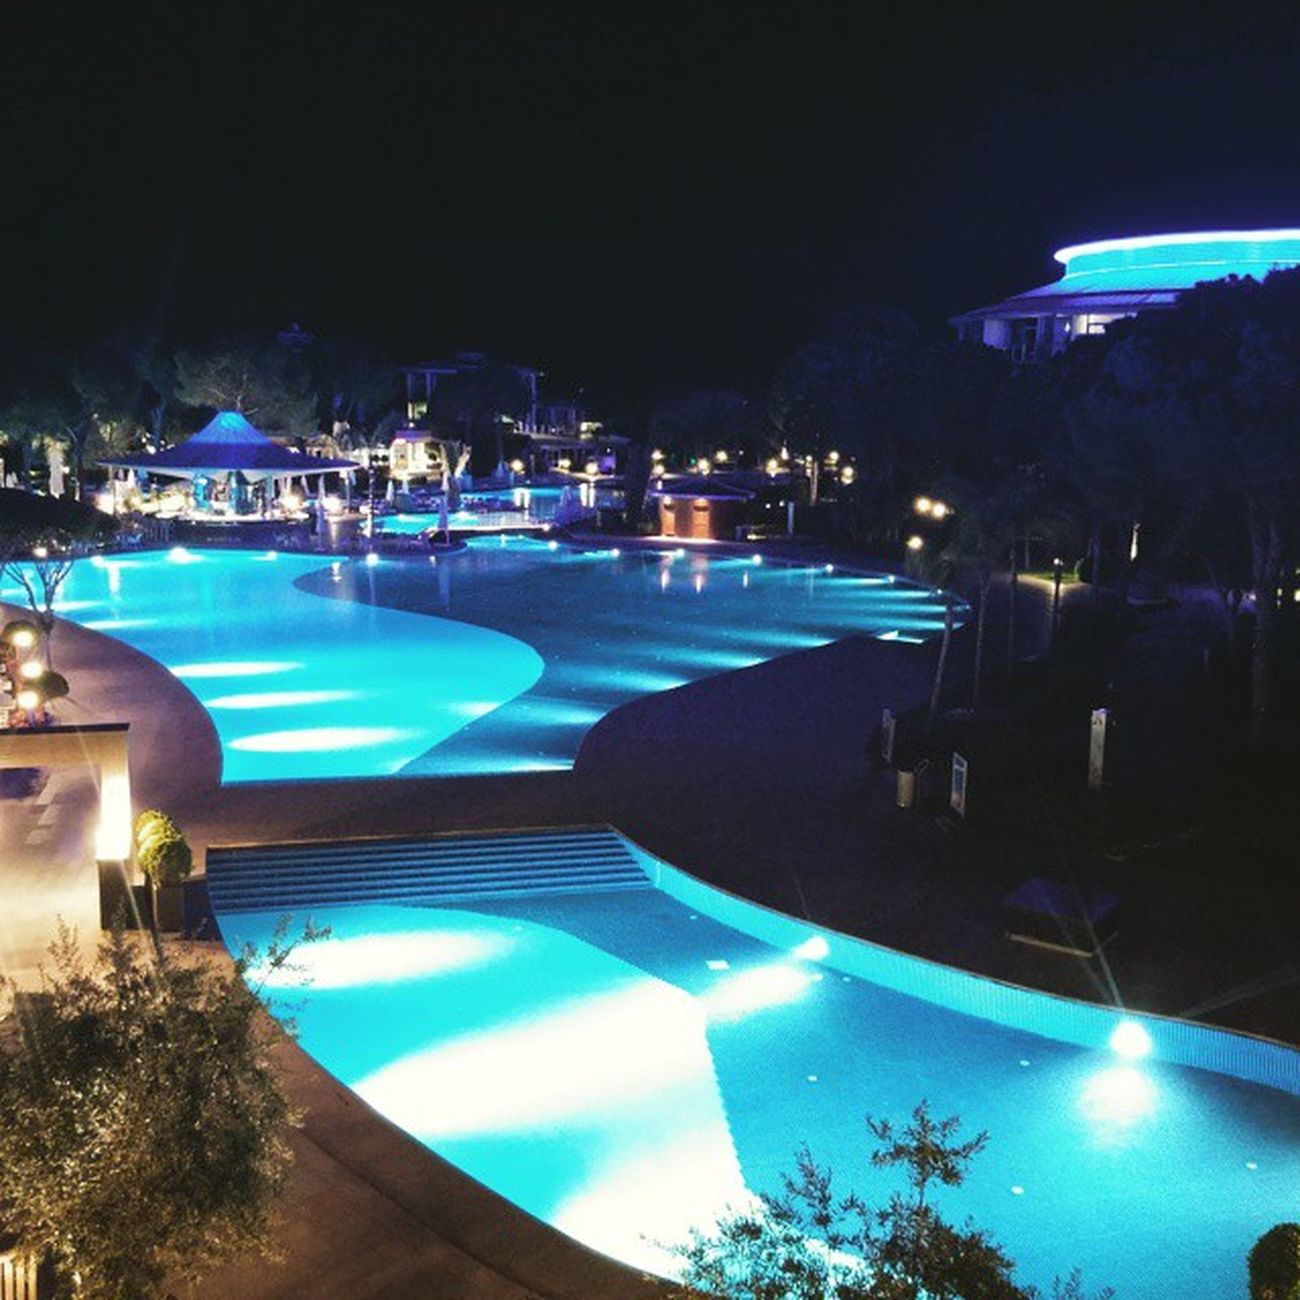 Antalya Belek Pool Calista Light Night Dark Blue Turkuaz